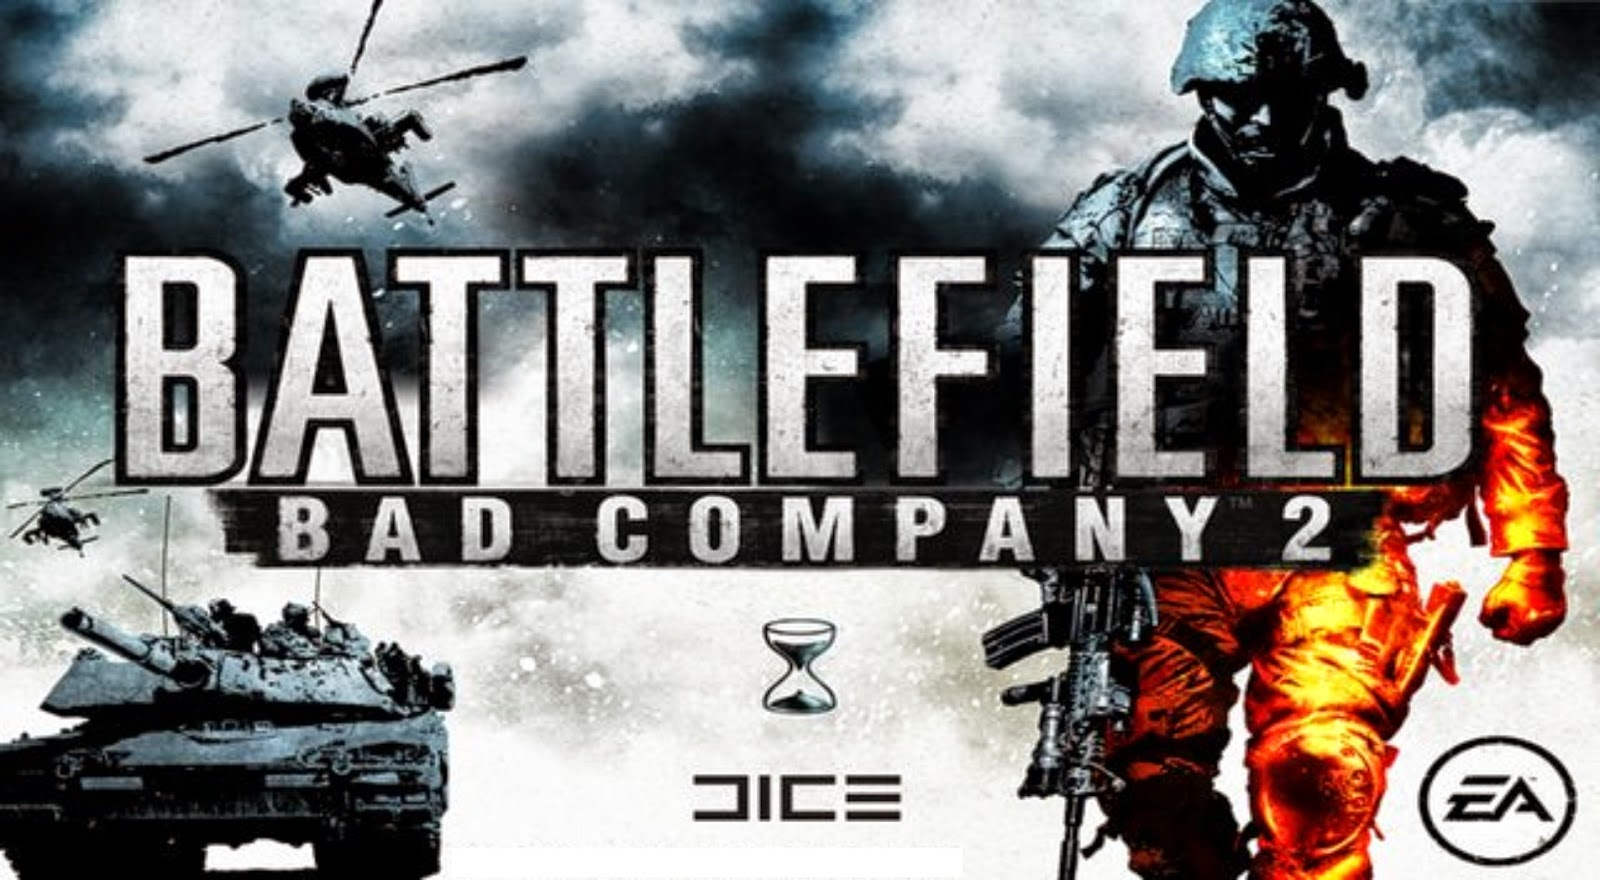 Pc Game] Battlefield Bad Company 2 [R G  Mechanics] Easy